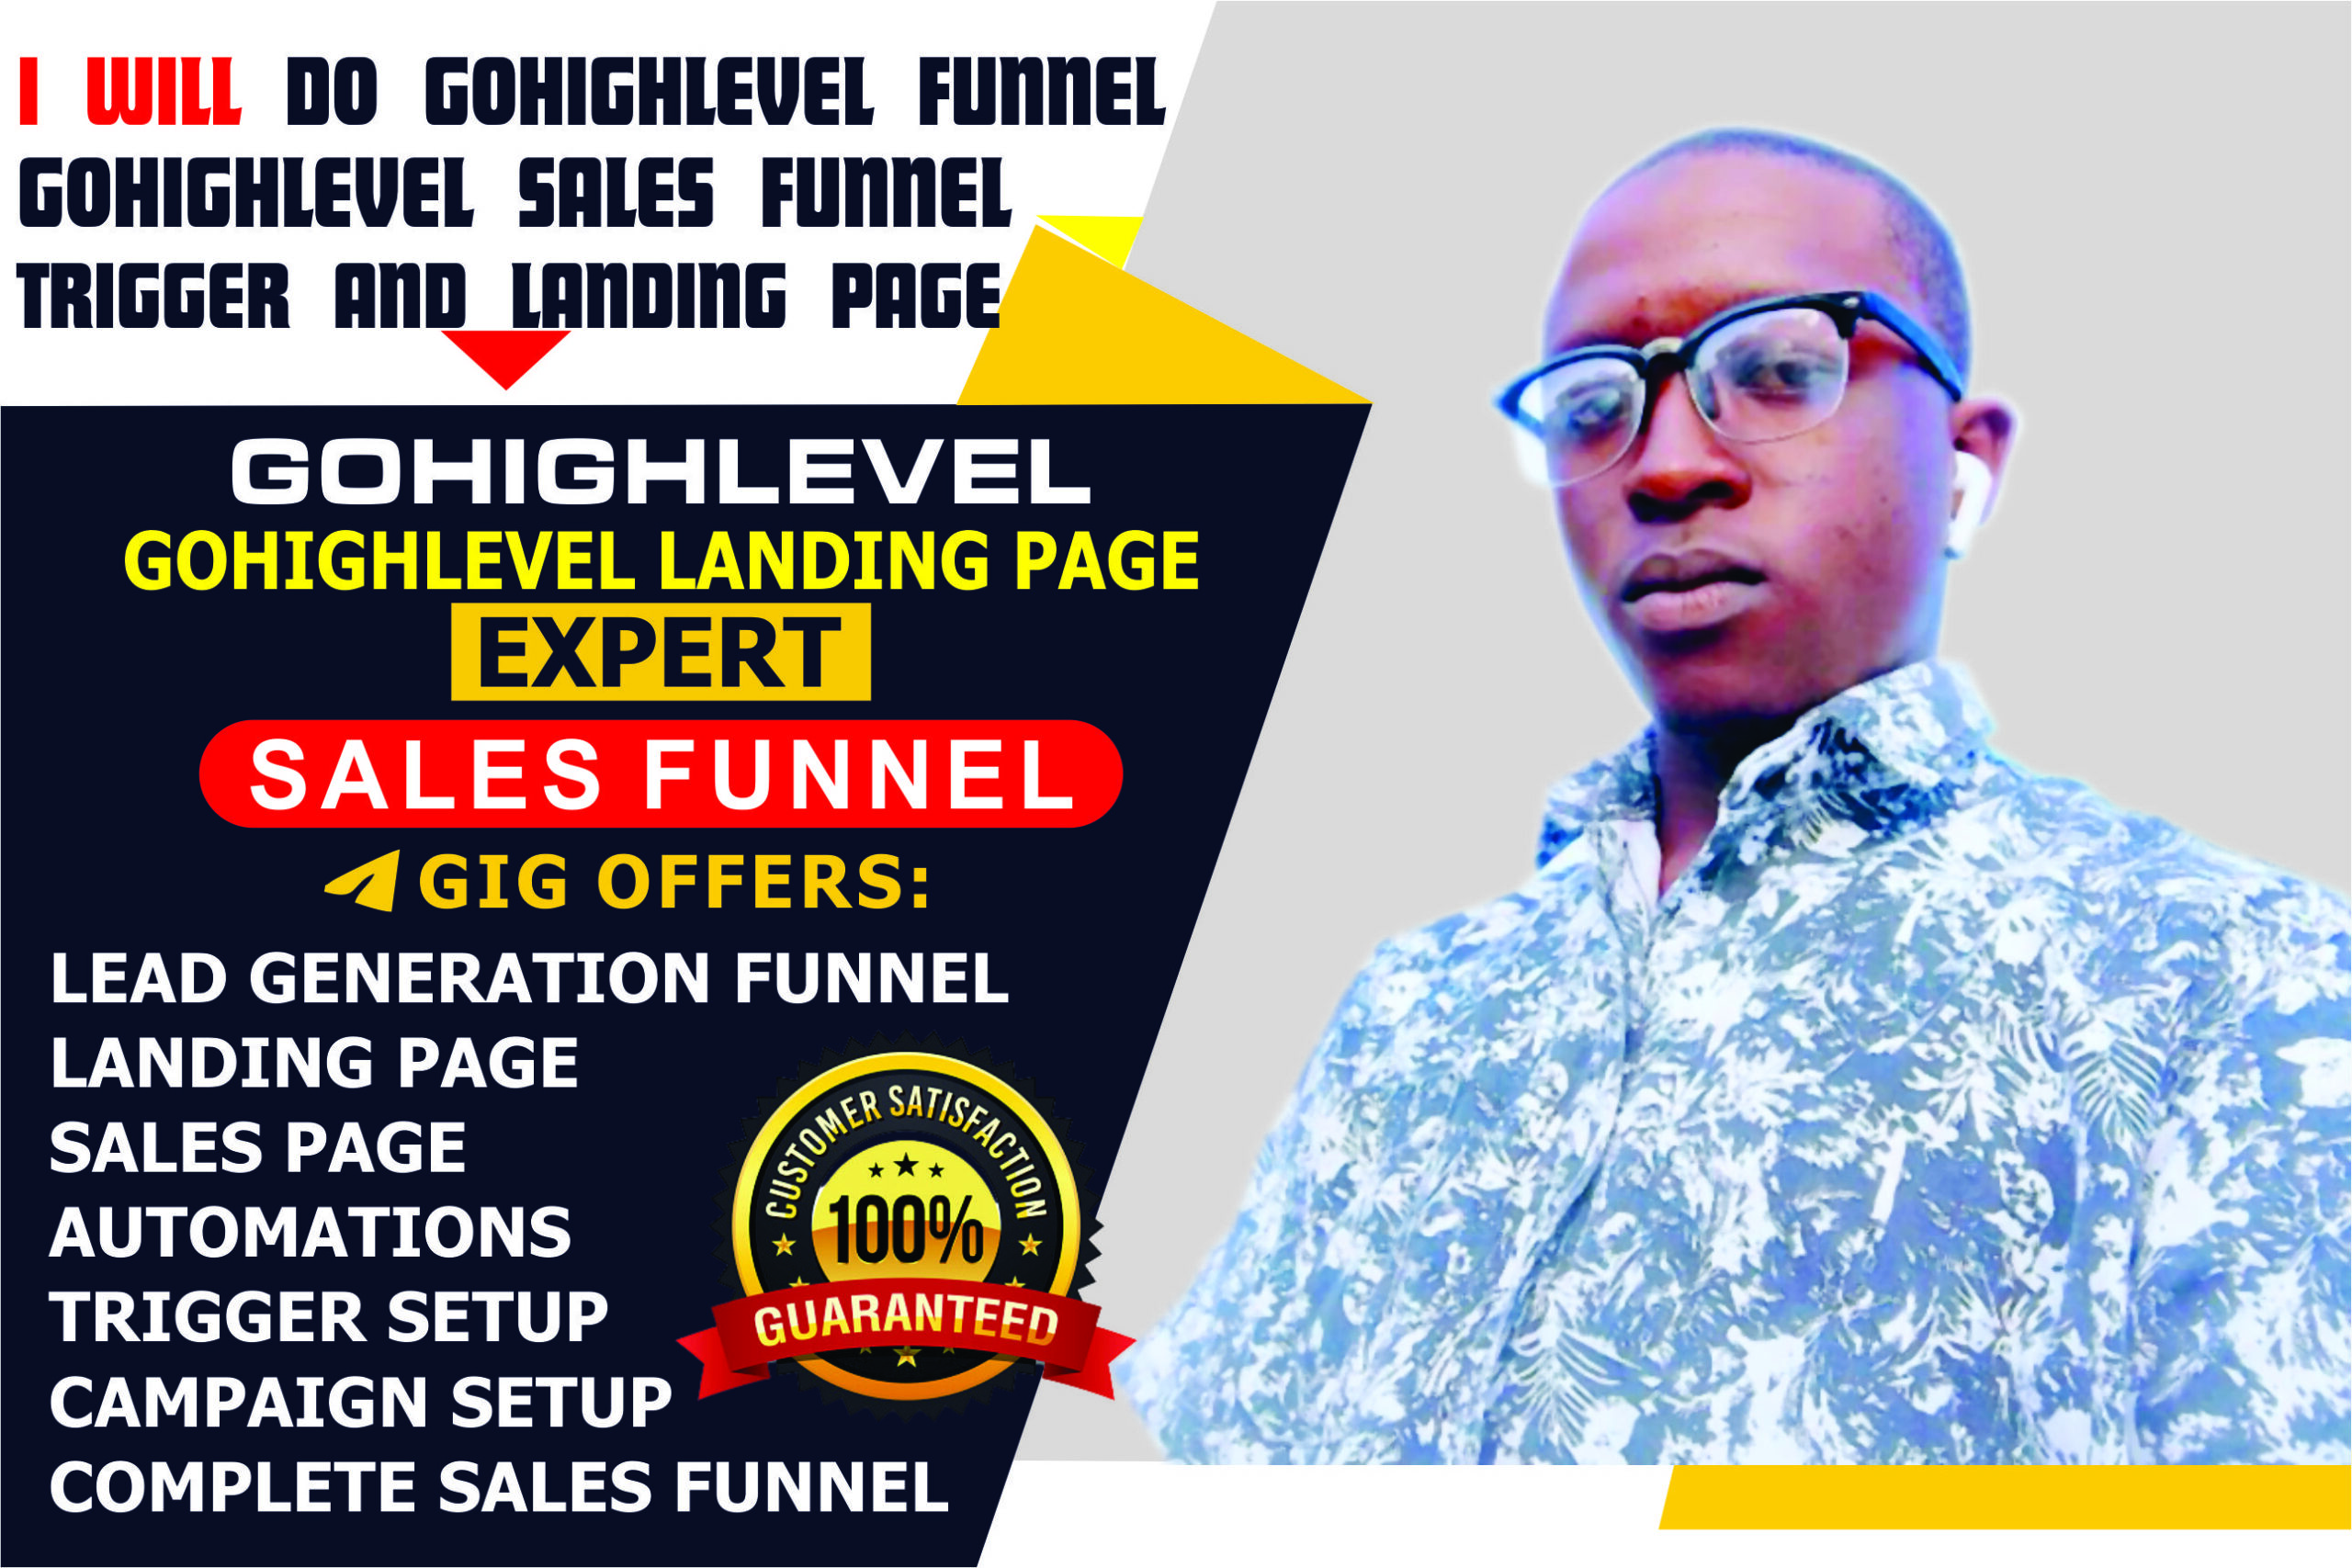 I will build gohighlevel sales funnel, gohighlevel sales funnel, highlevel landing page, FiverrBox